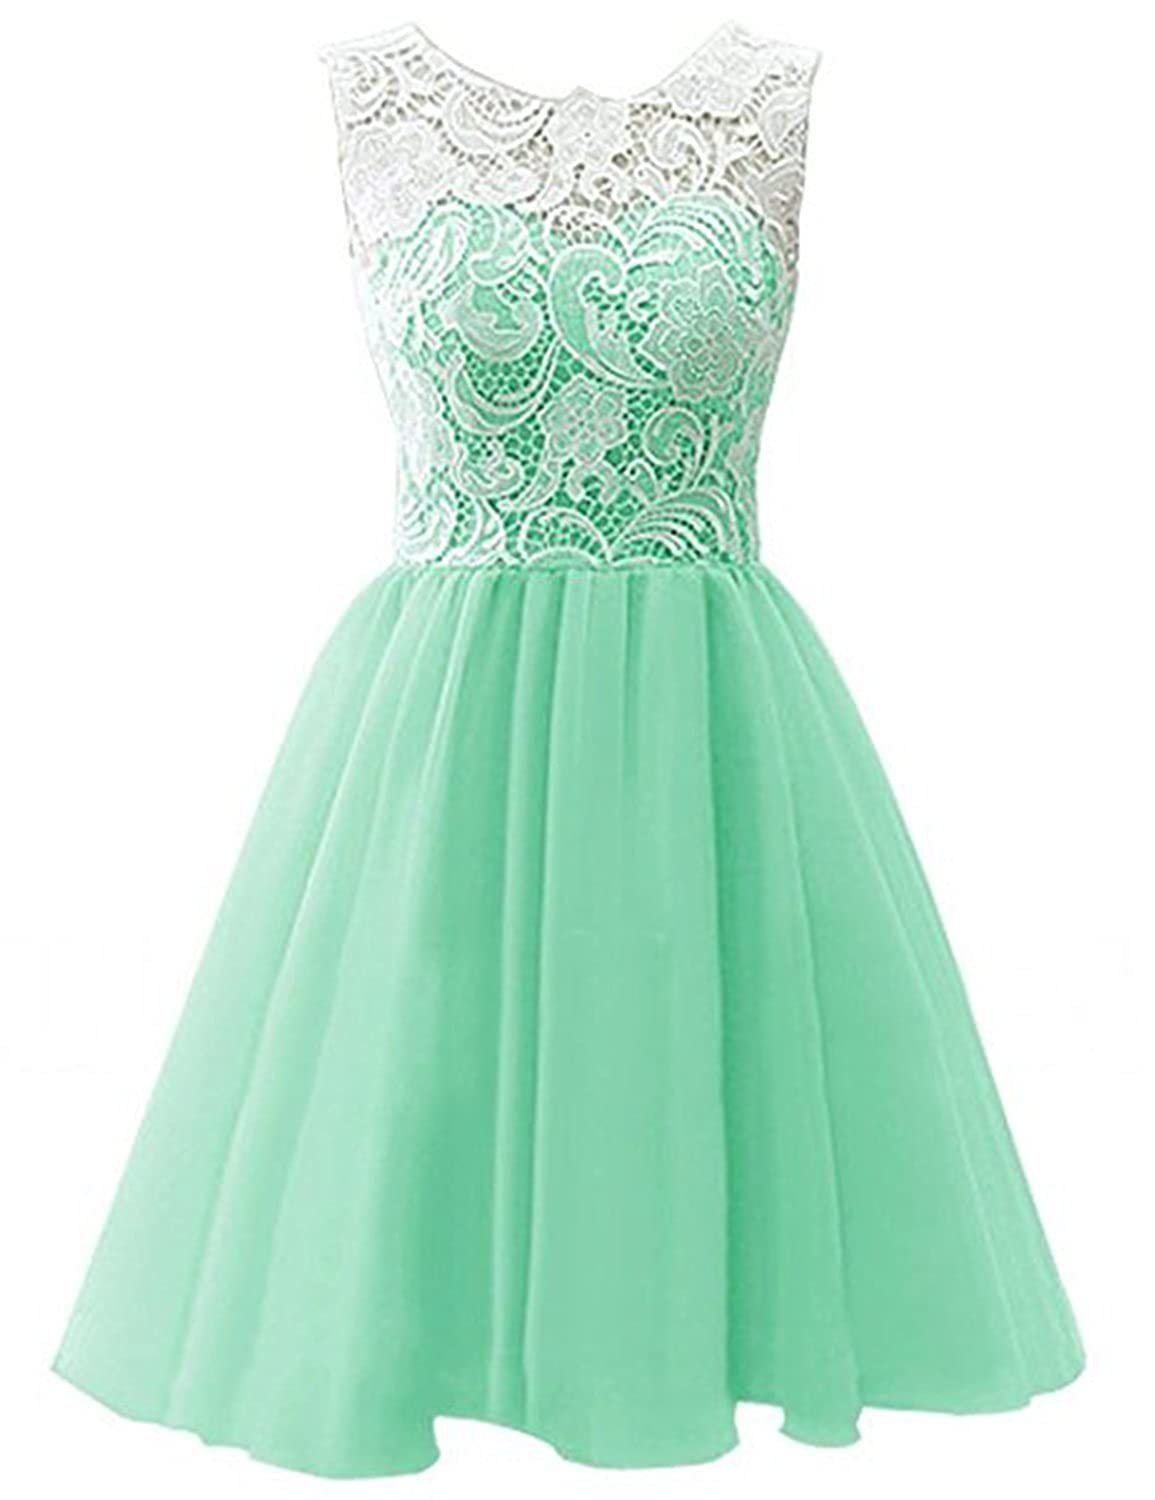 Mint YIRENWANSHA 2018 Short Homecoming Dress for Women Manual Lace Knee Length Formal Prom Gown YJW5